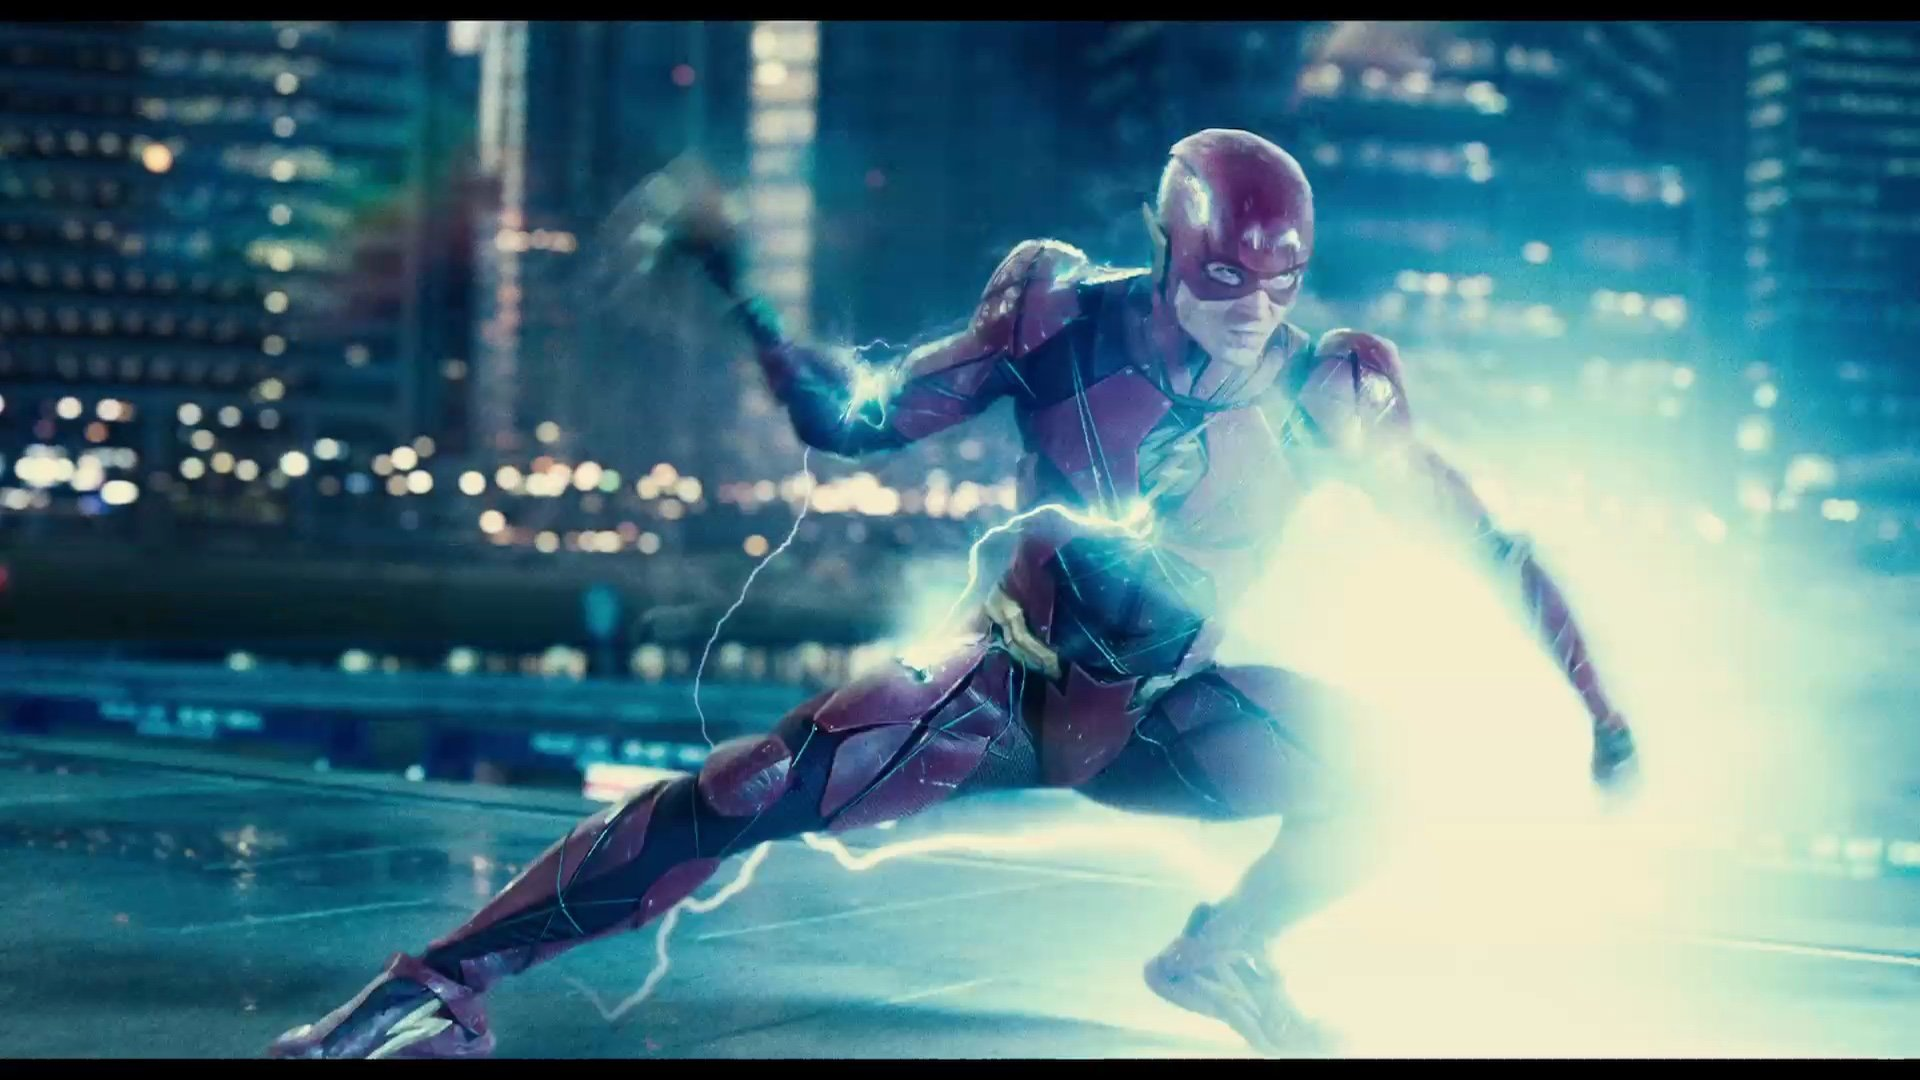 I'm not asking you to be just like Flash...But if you can... - Screenshot from Justice League (2017) trailer.